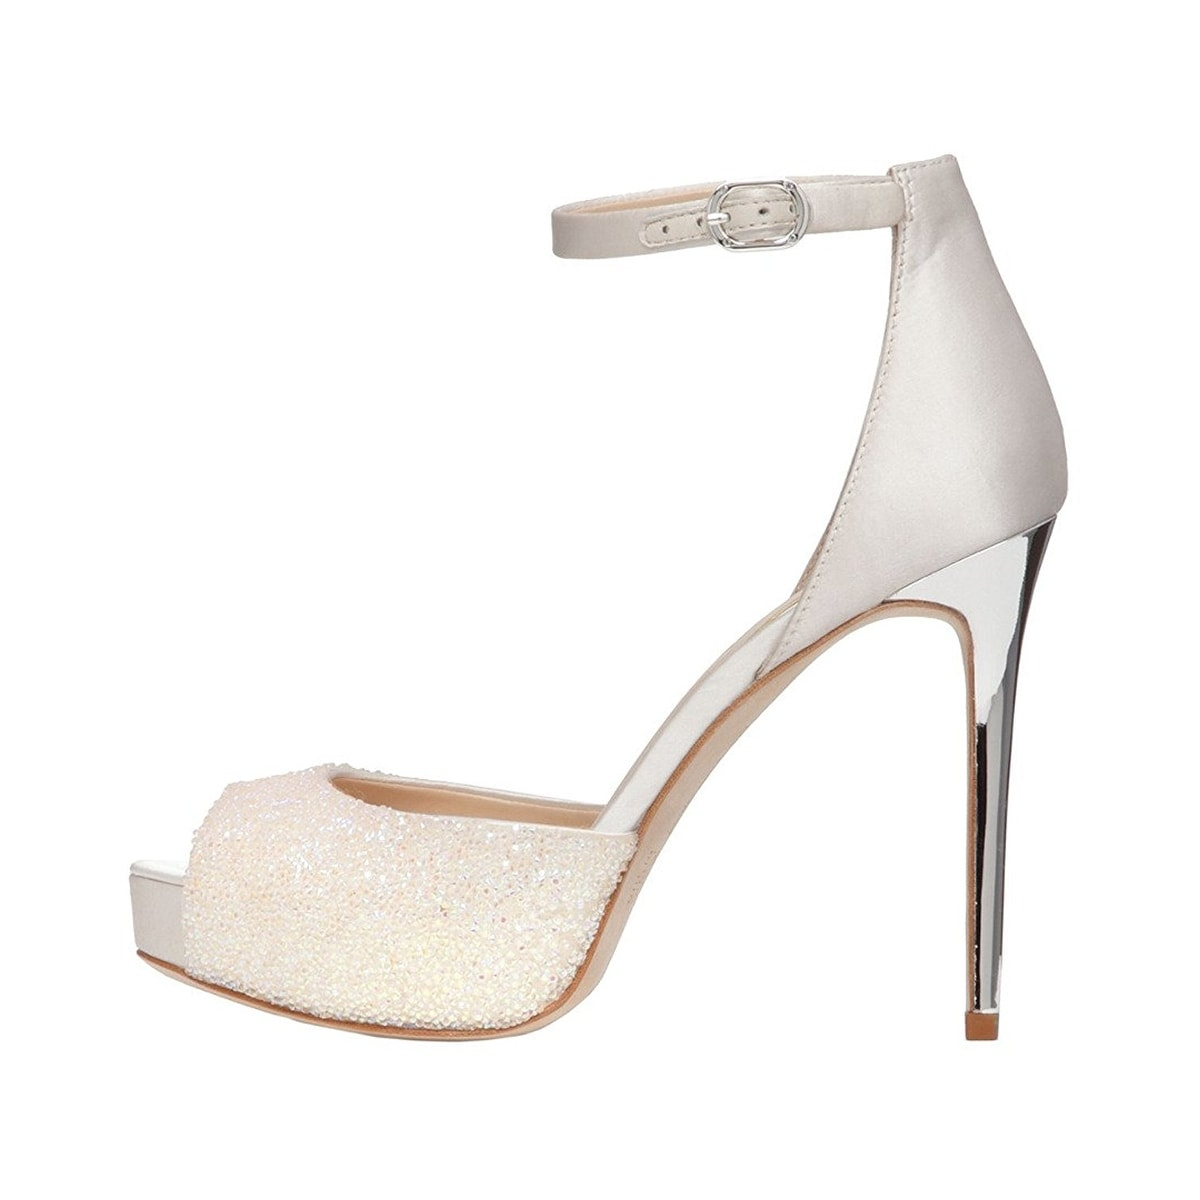 1ebad1b56a0 Shop Imagine Vince Camuto Karleigh Open Toe High Heel Pumps Iridescent Ivory  Crystal - Free Shipping Today - Overstock - 19789294